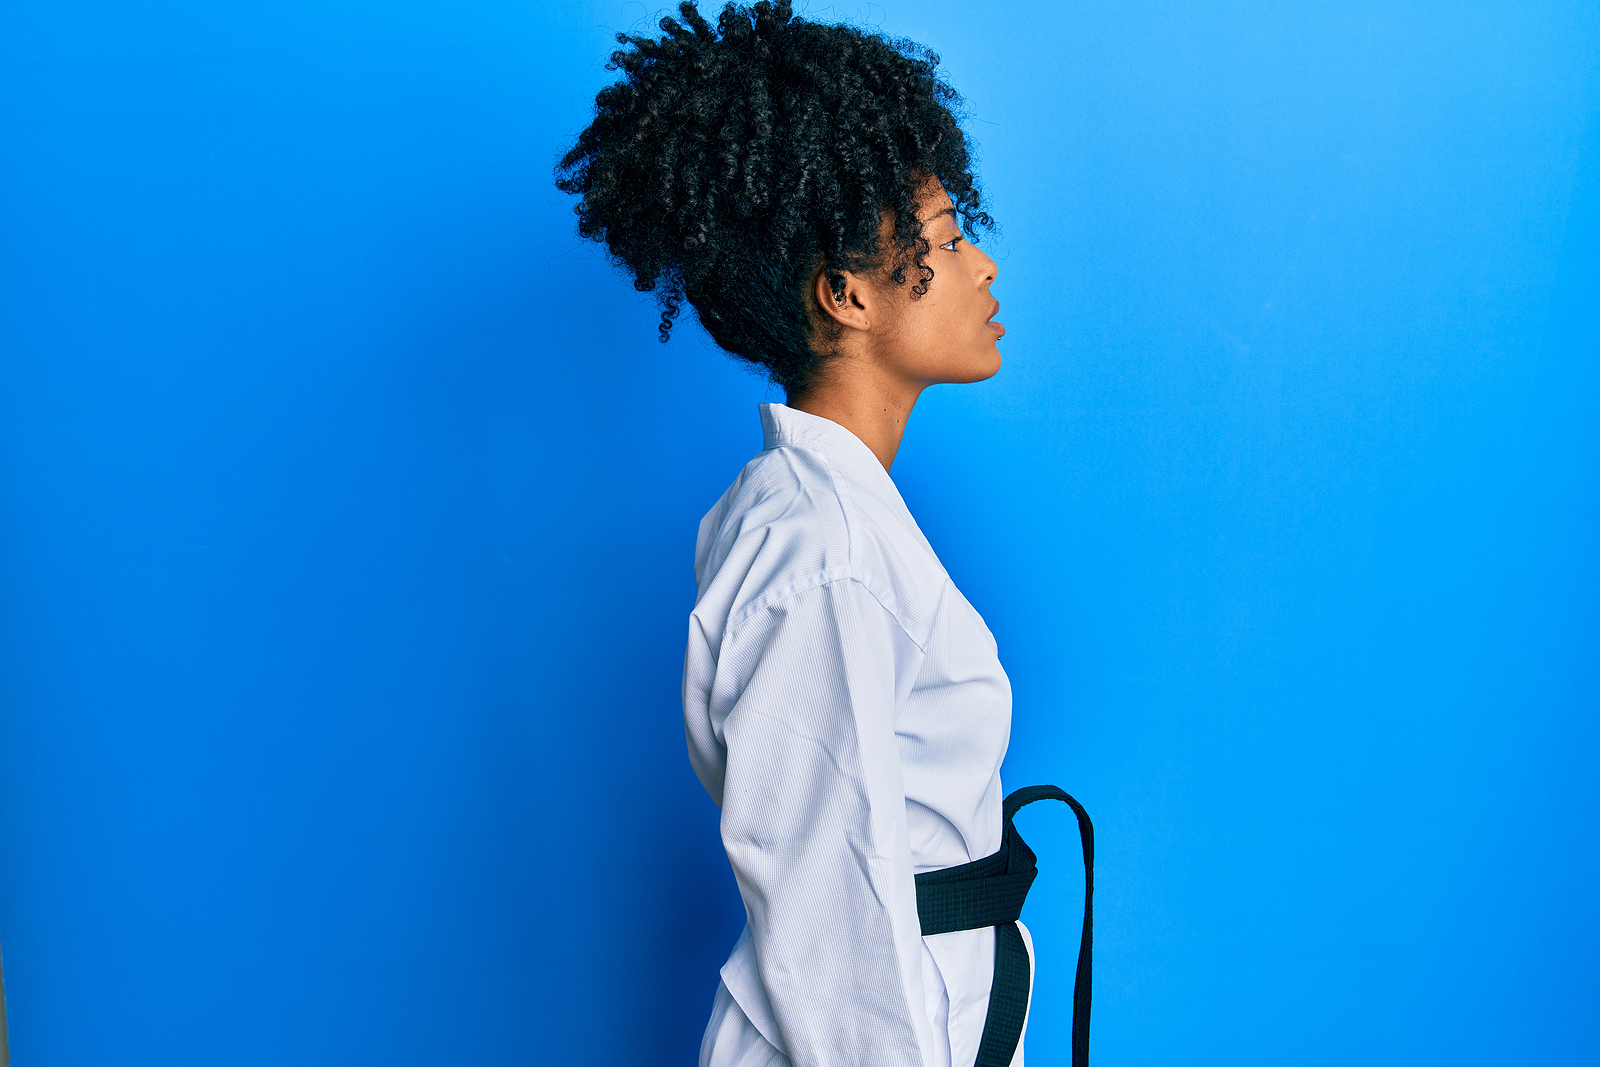 Woman in karate outfit standing to the side of blue background. Dealing with life transitions, anxiety, trauma, and more is hard. Get support in Acceptance and Commitment Therapy in detroit, mI. With principles from the act hexaflex model, we can help you. Call now to begin act therapy!